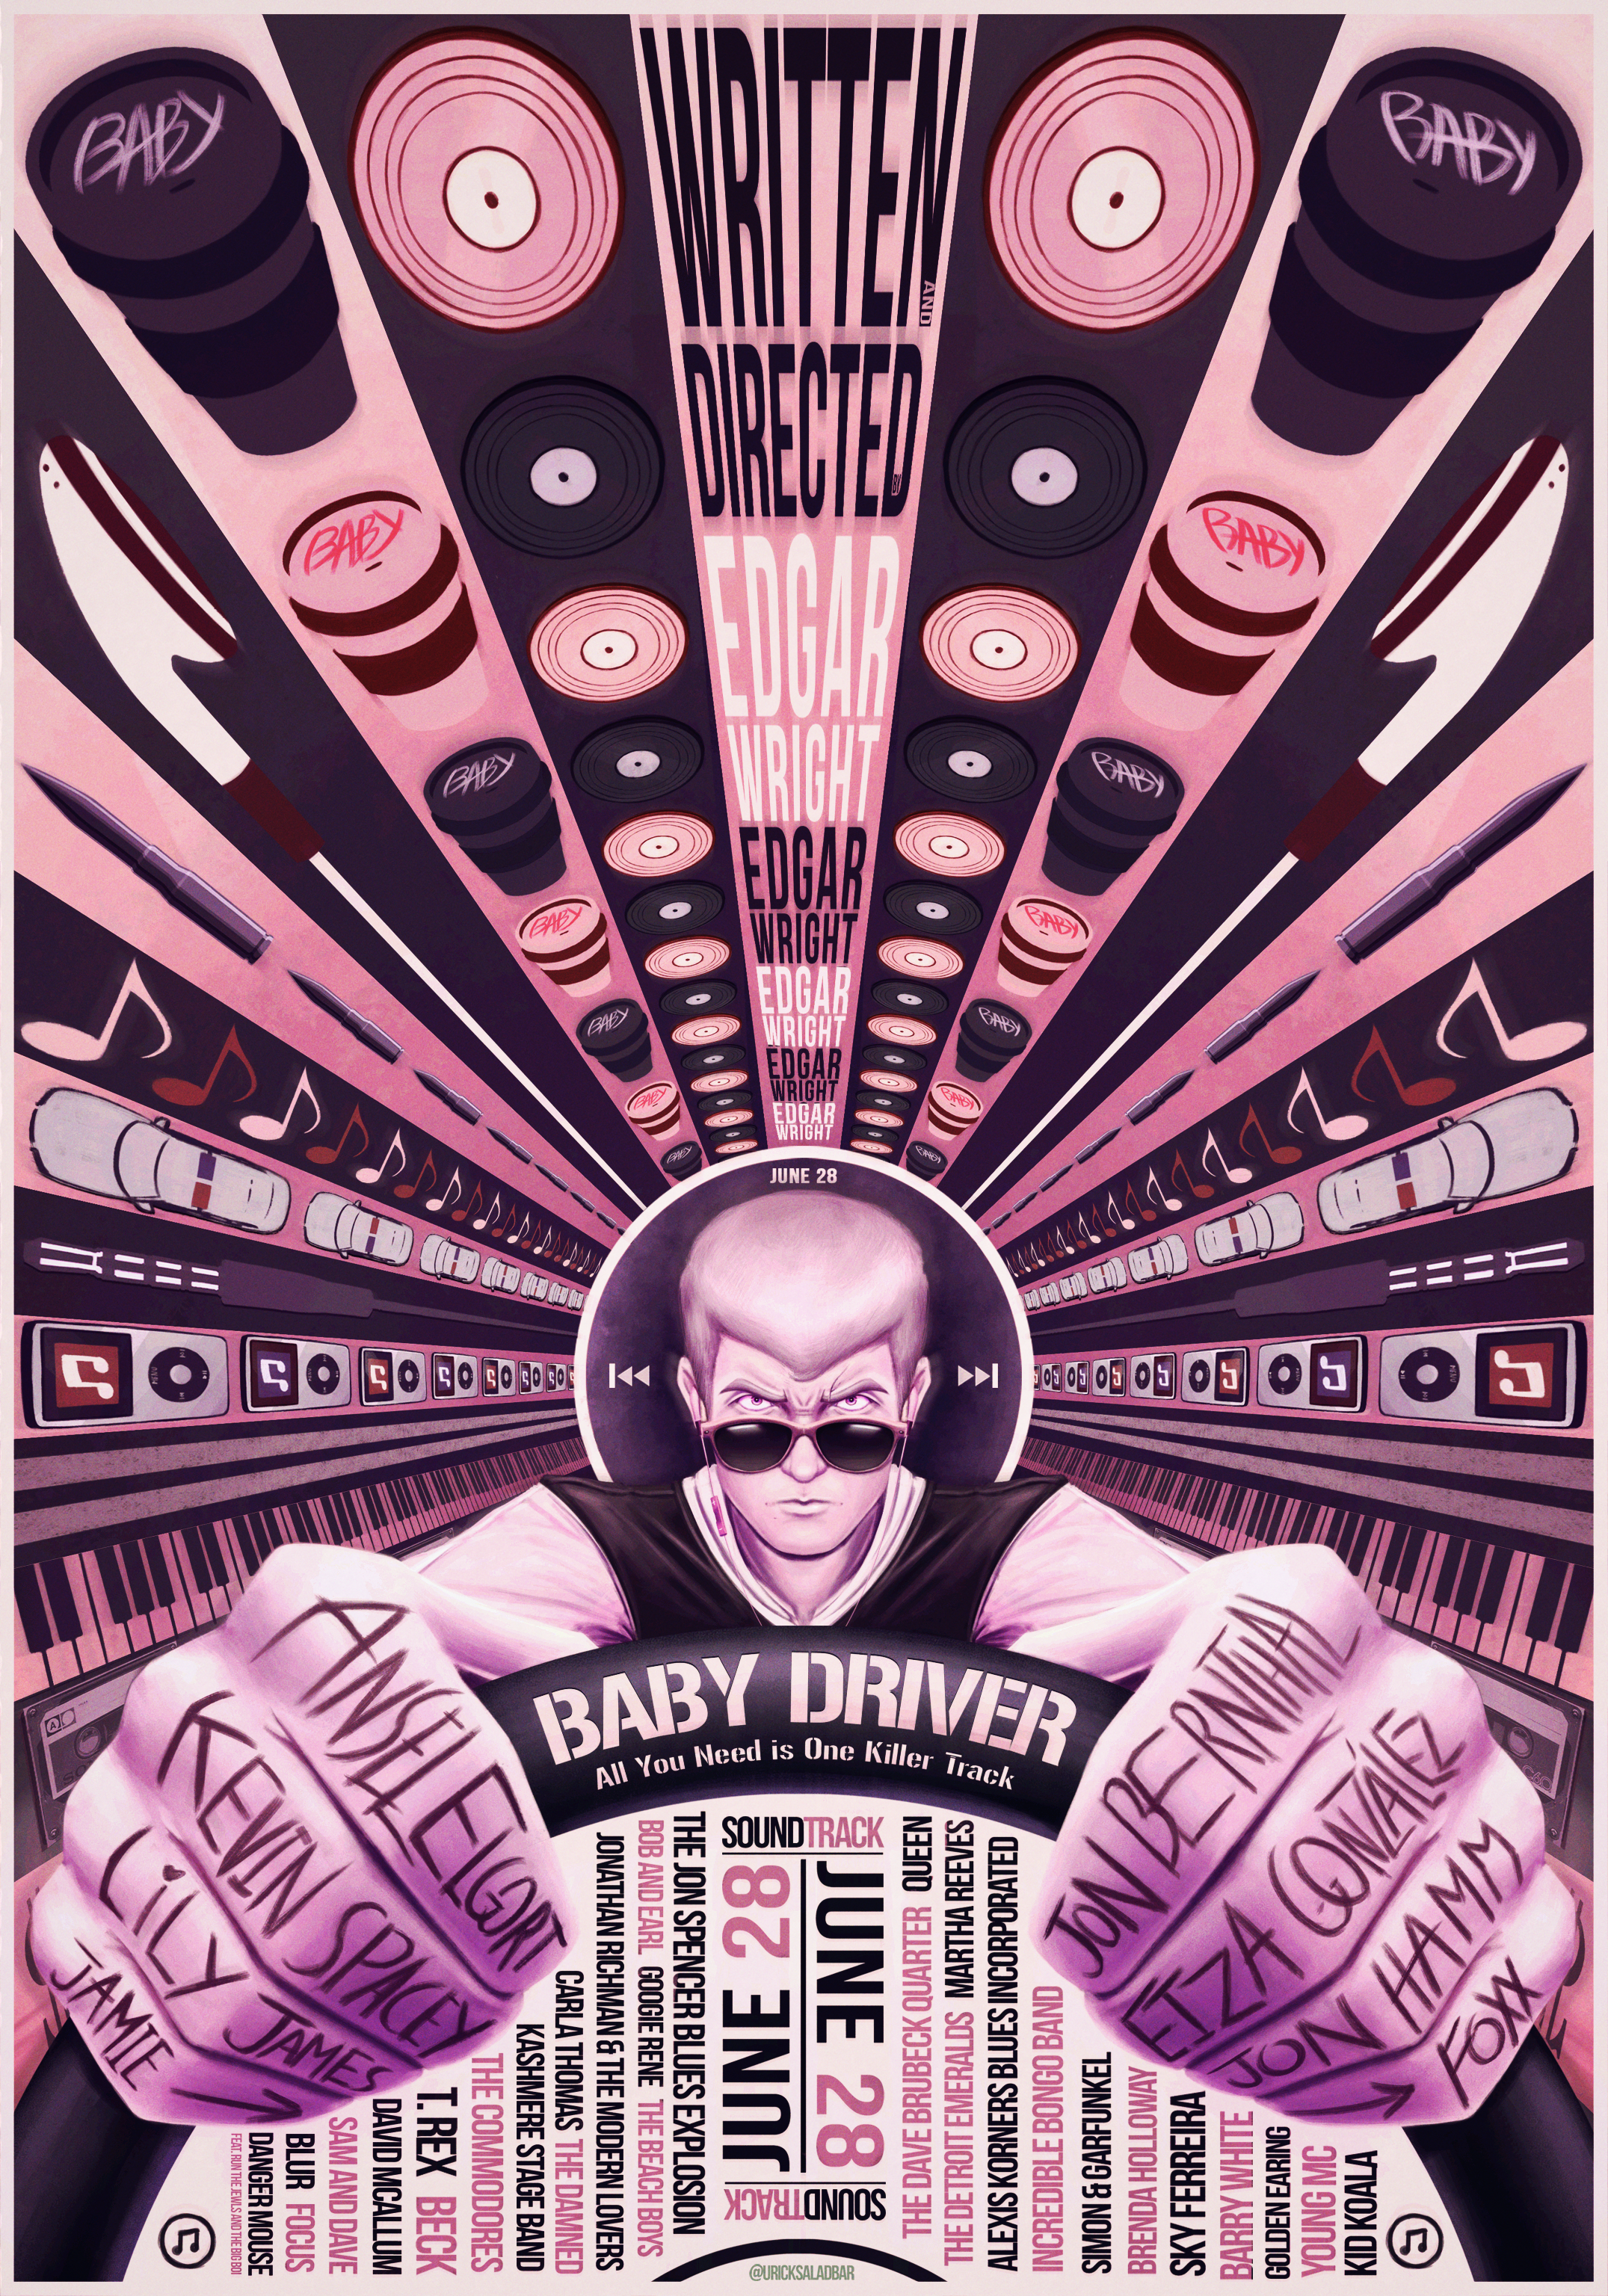 Baby Driver Poster Contest Entry